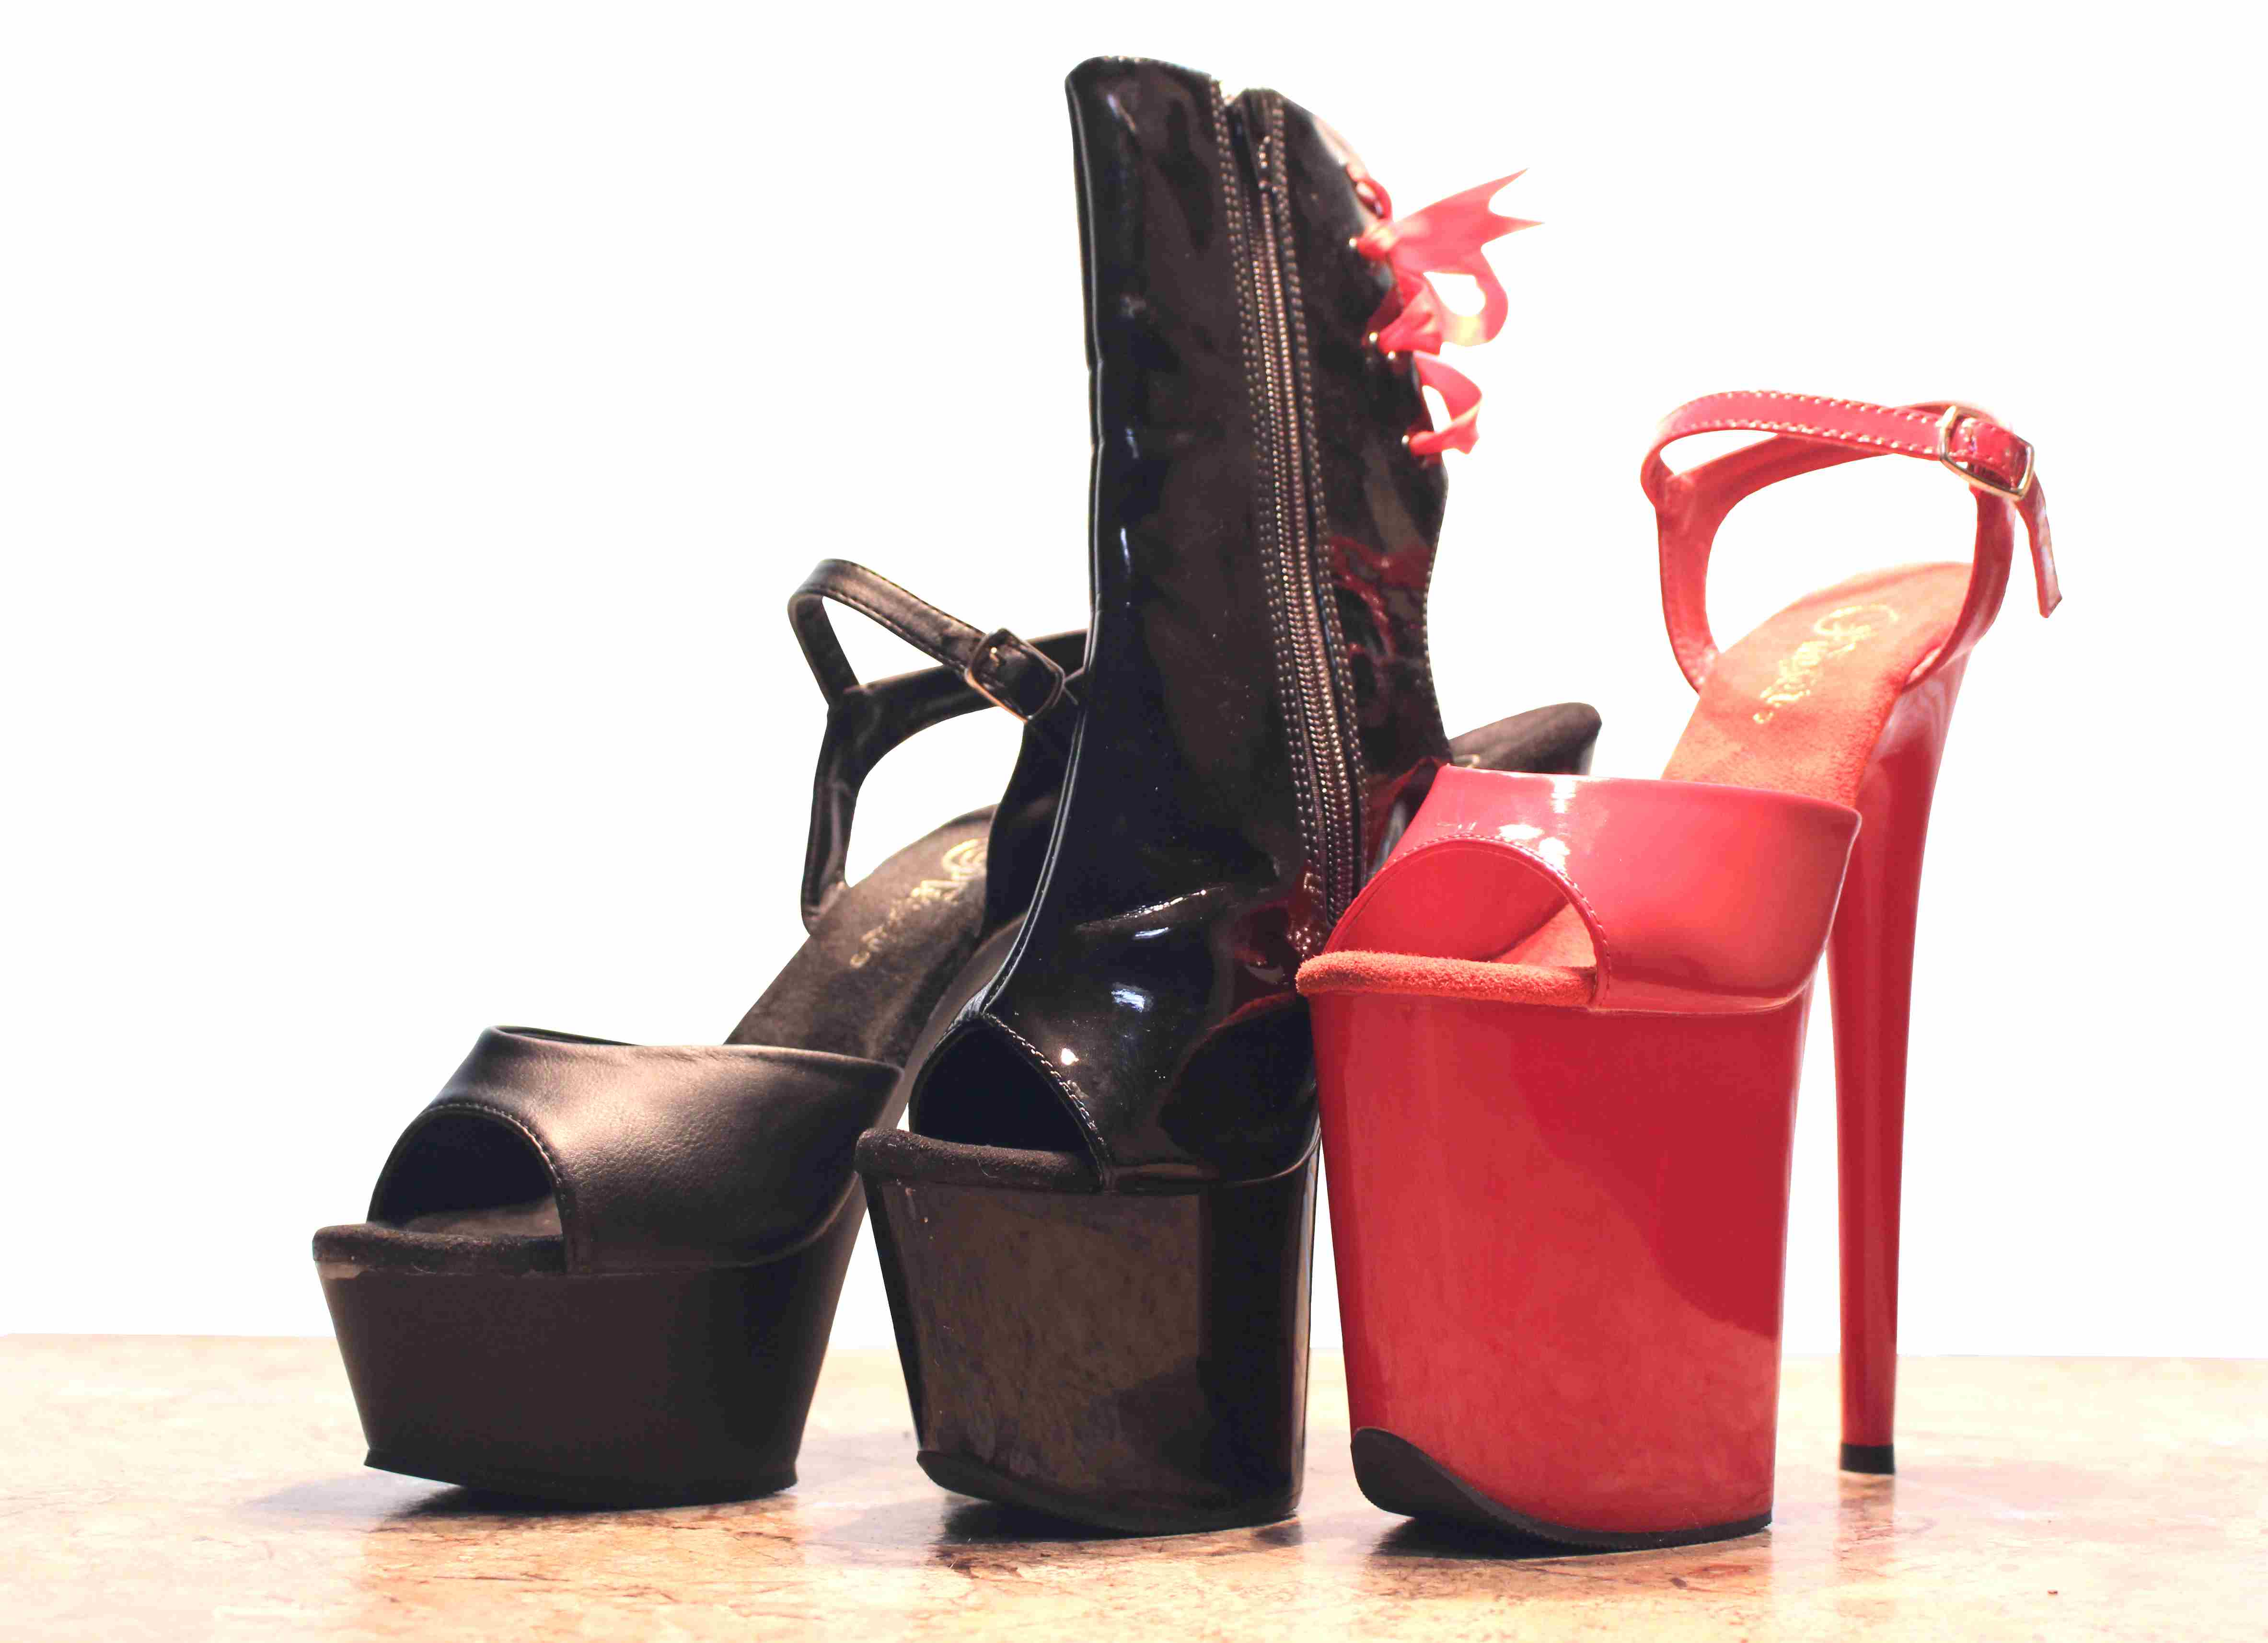 Choosing Your Heels: Size, Style, and Material